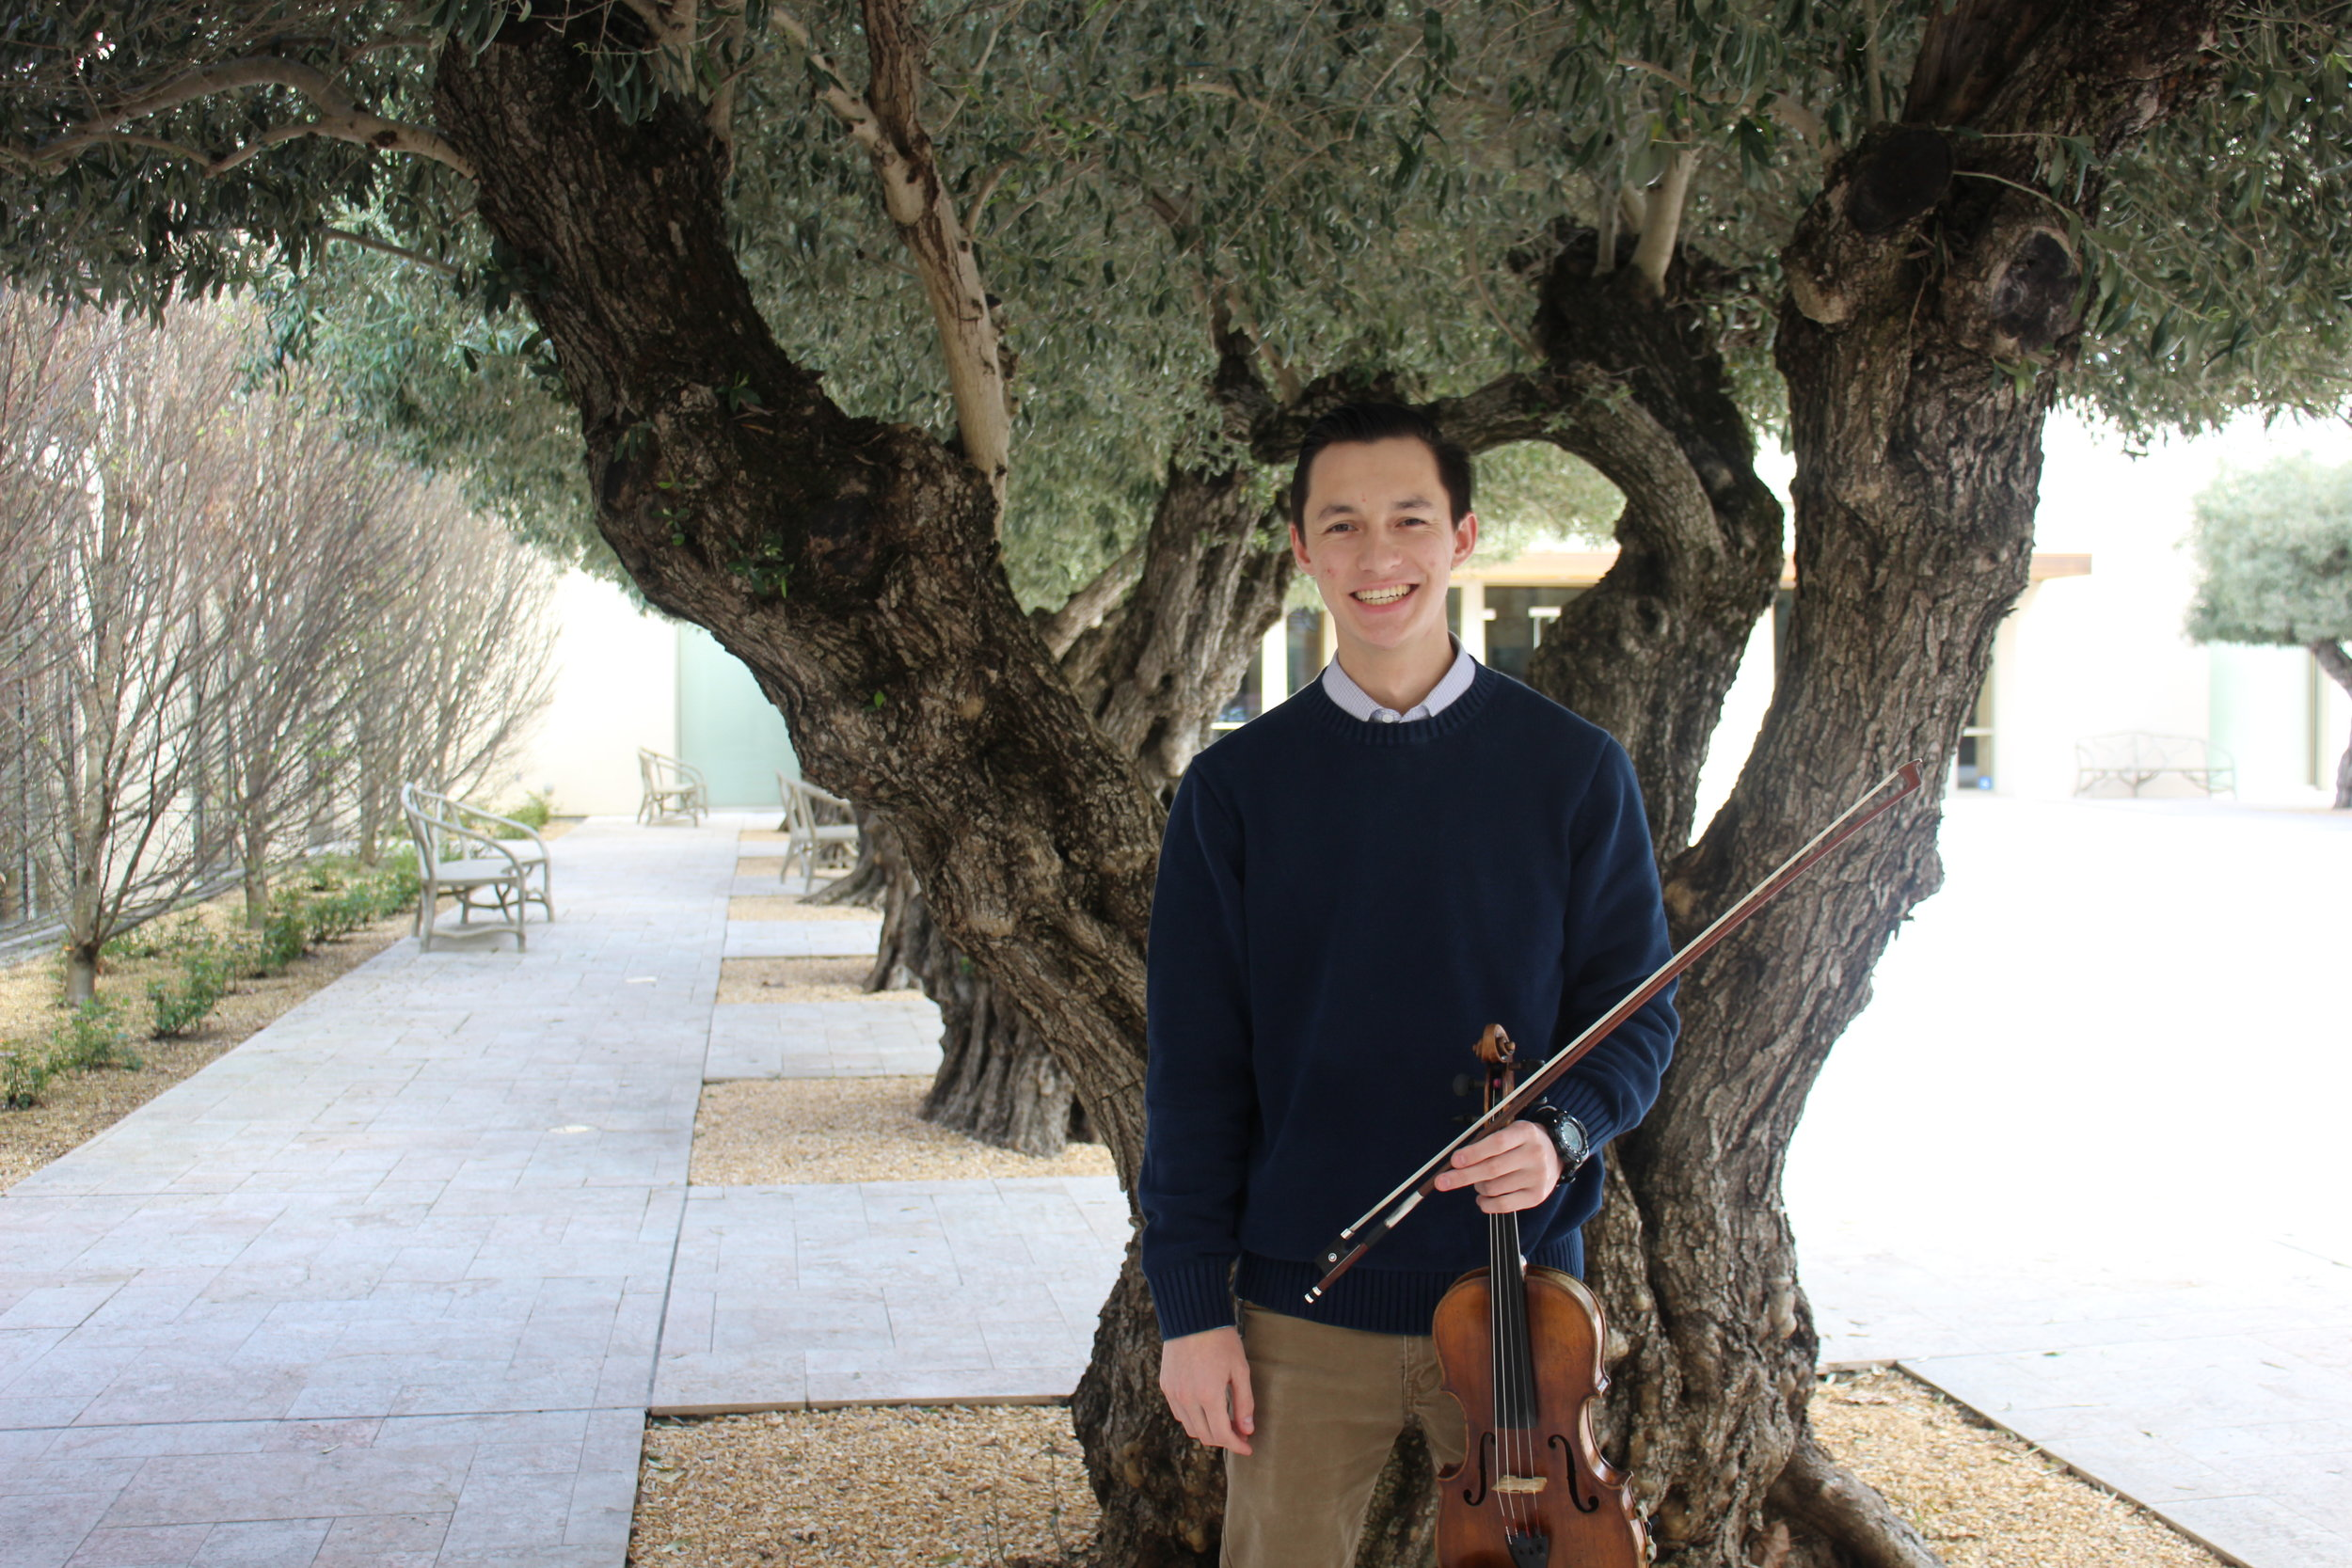 Senior Music Education major and violinist Caleb Forschen will be performing his senior recital on April 10. STAR // Emily Kowalski